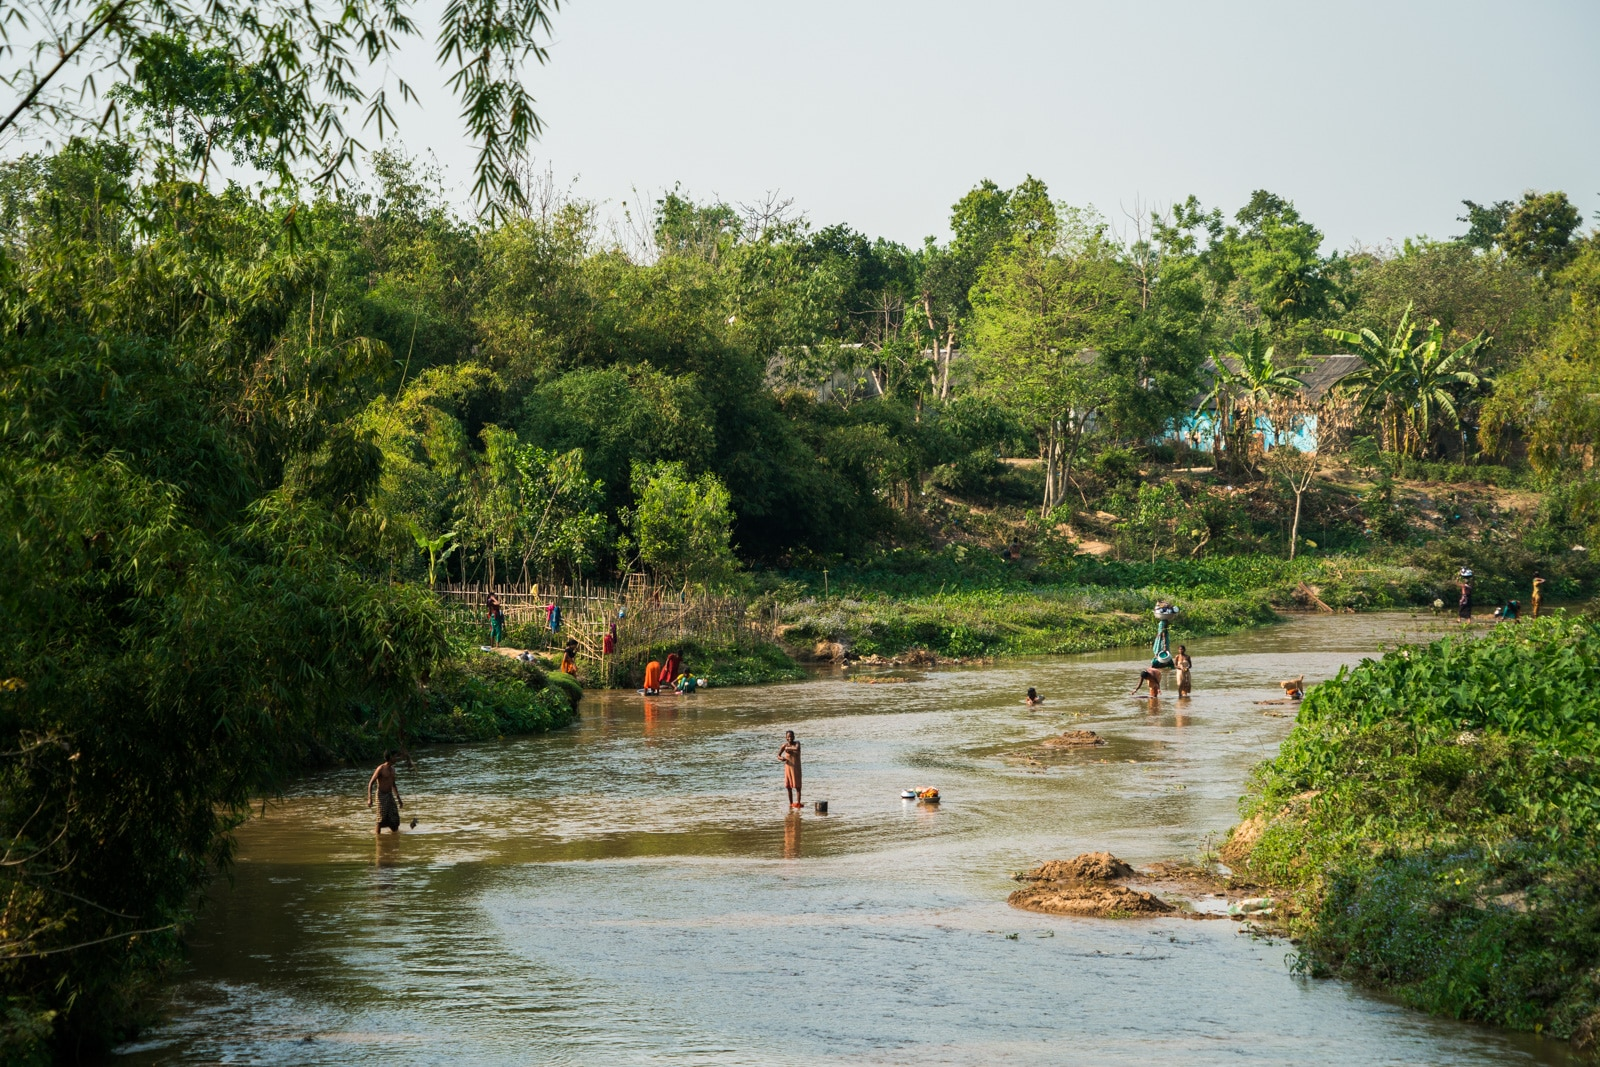 Backpacking in Bangladesh travel guide - people washing in a stream in Srimangal - Lost With Purpose travel blog